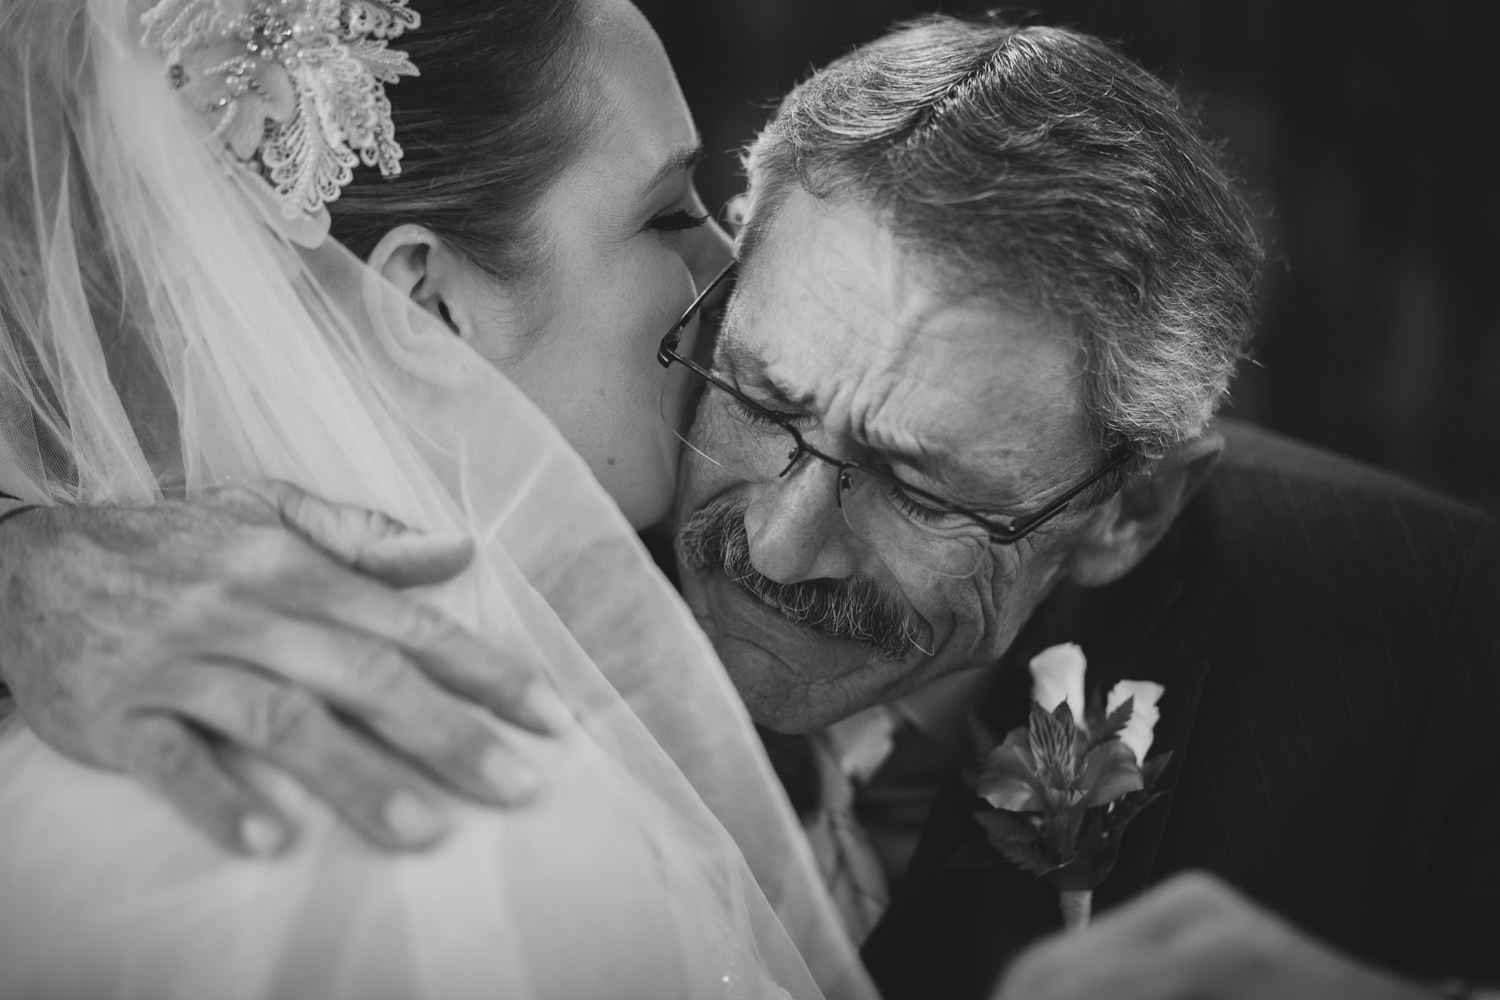 Bride and her father's emotional embrace before the wedding cere